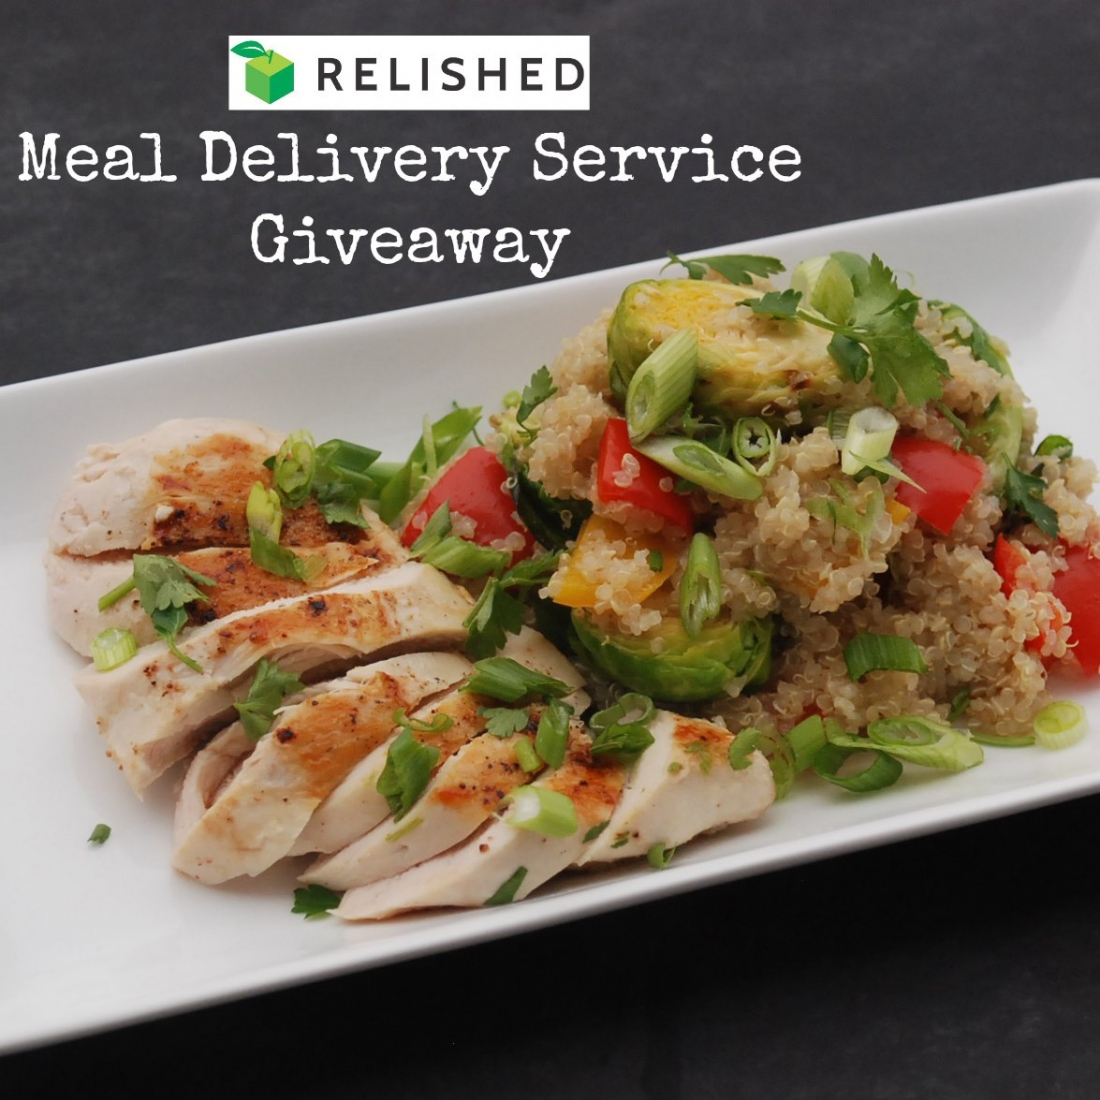 Relished provides a fresh, locally sourced ingredient kit and instructions you need to cook delicious meals every week.